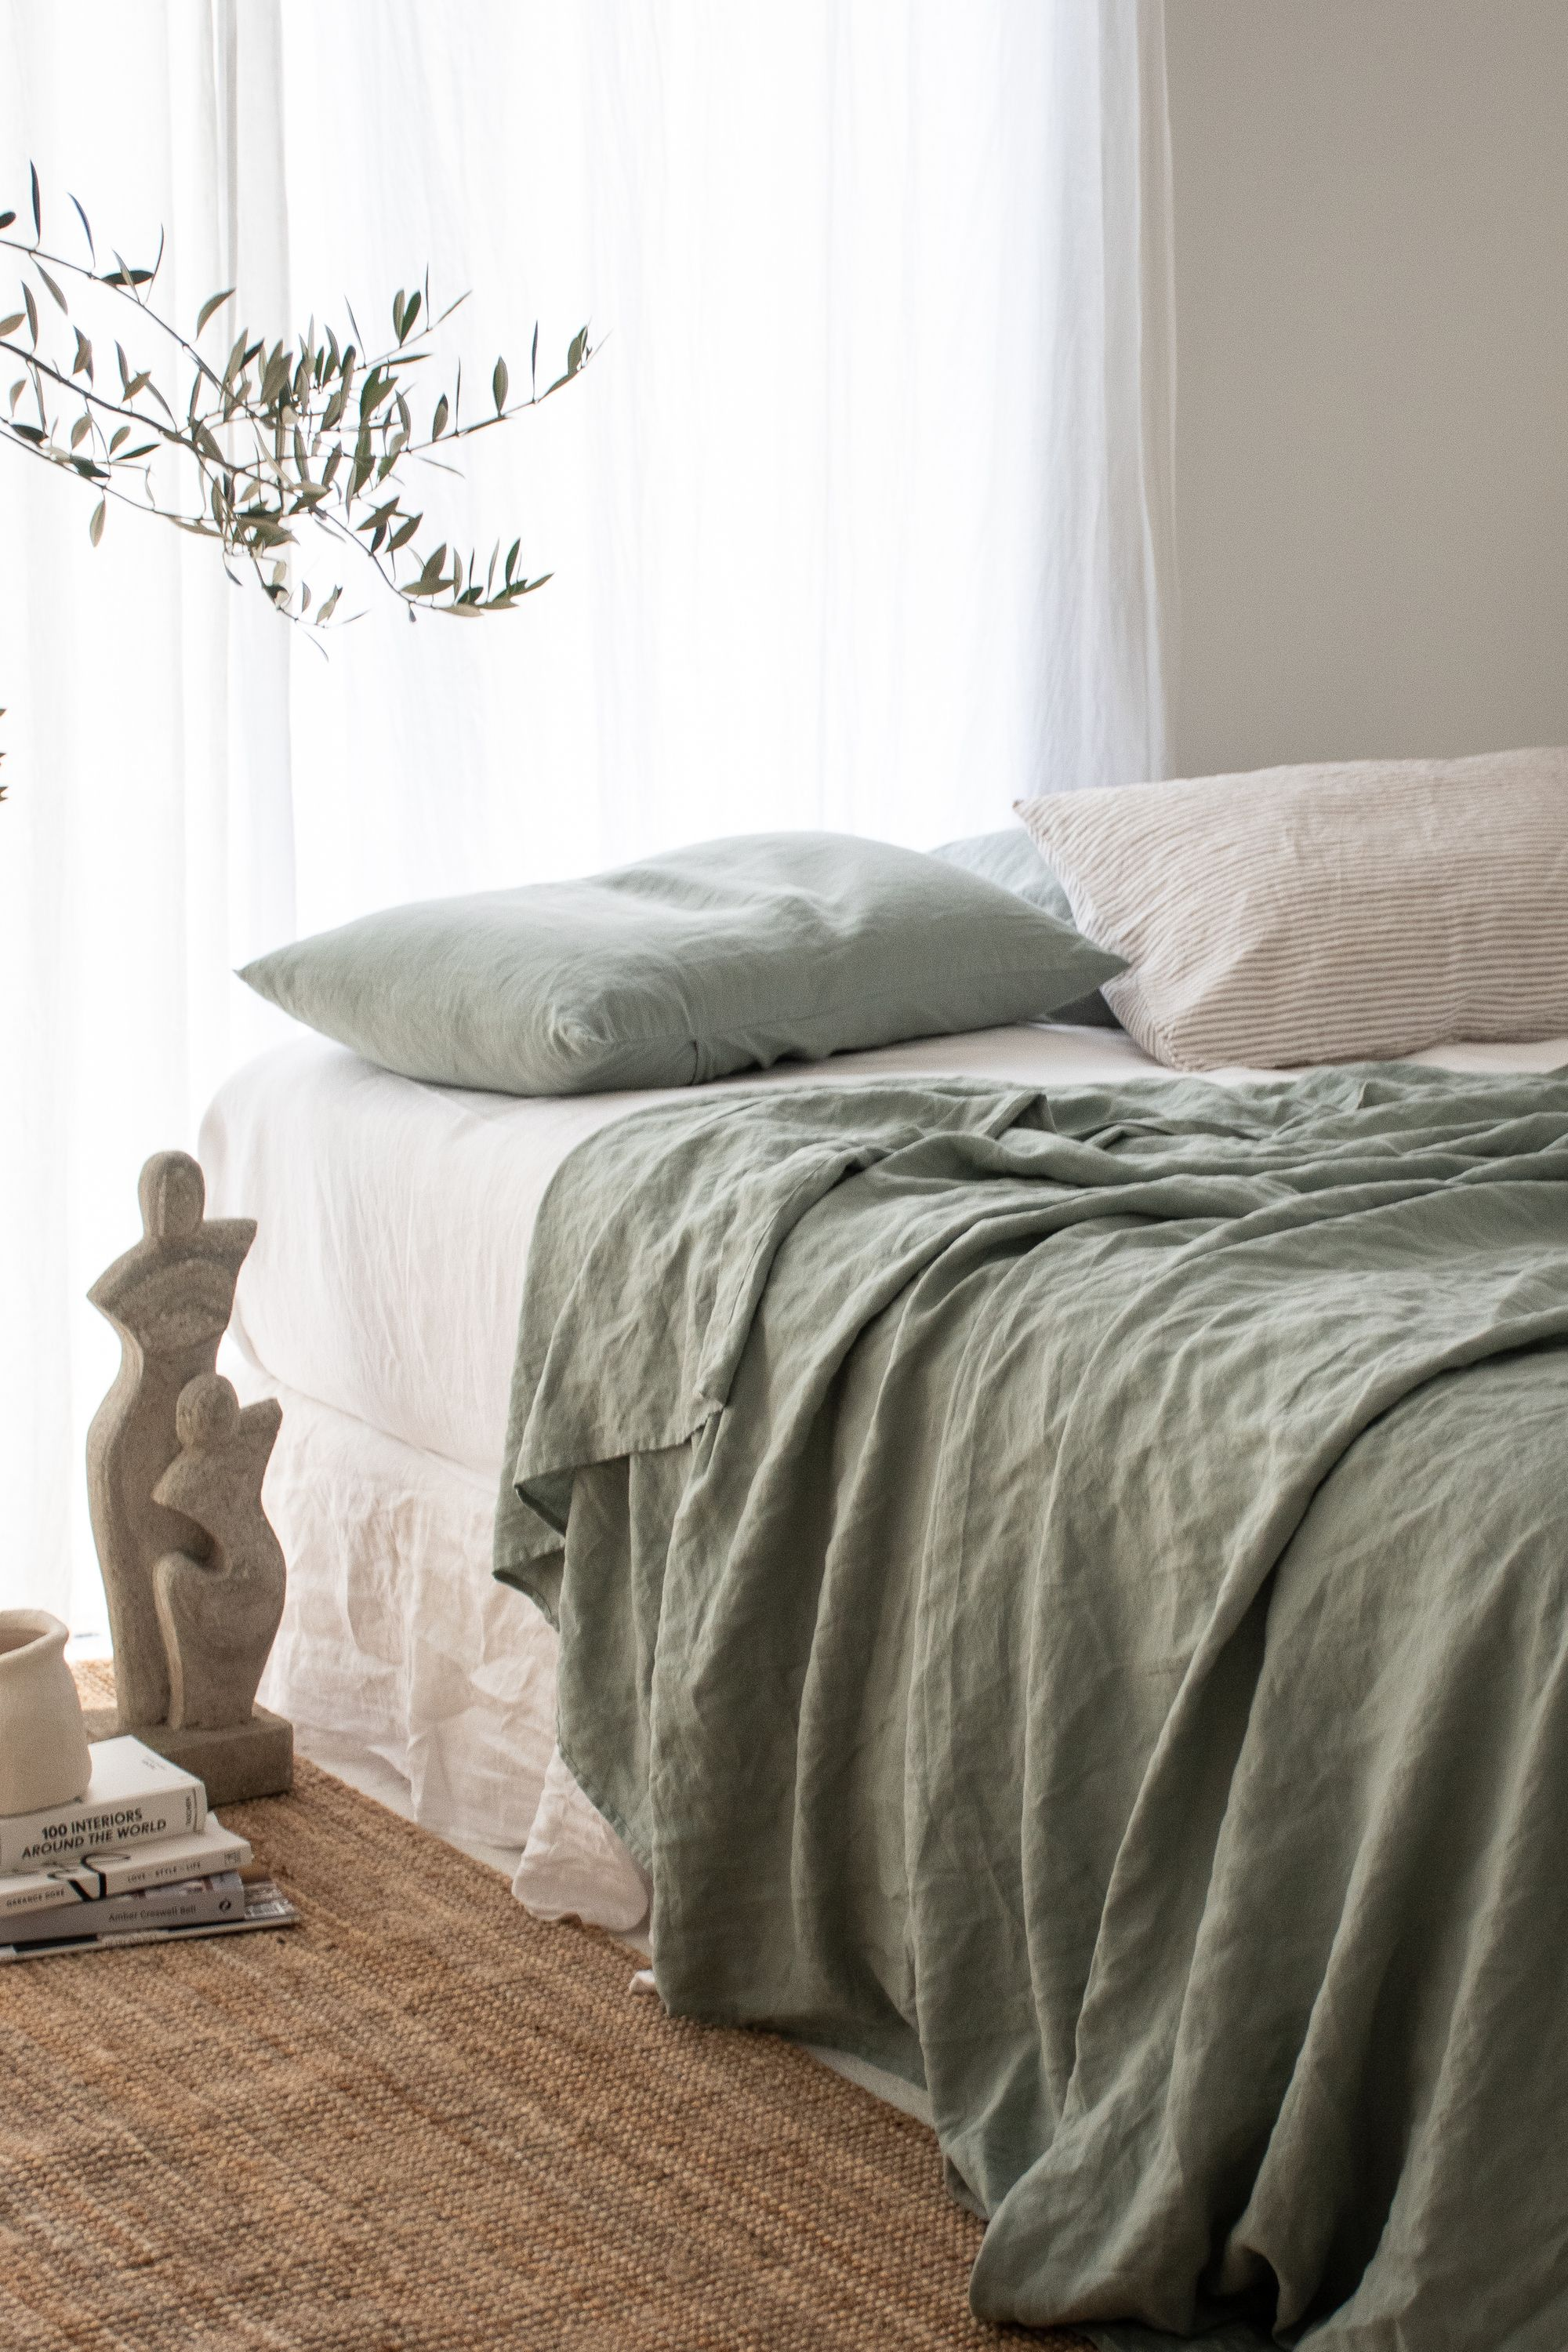 Pure French Linen Sheets & Bedding -   16 sage green aesthetic ideas